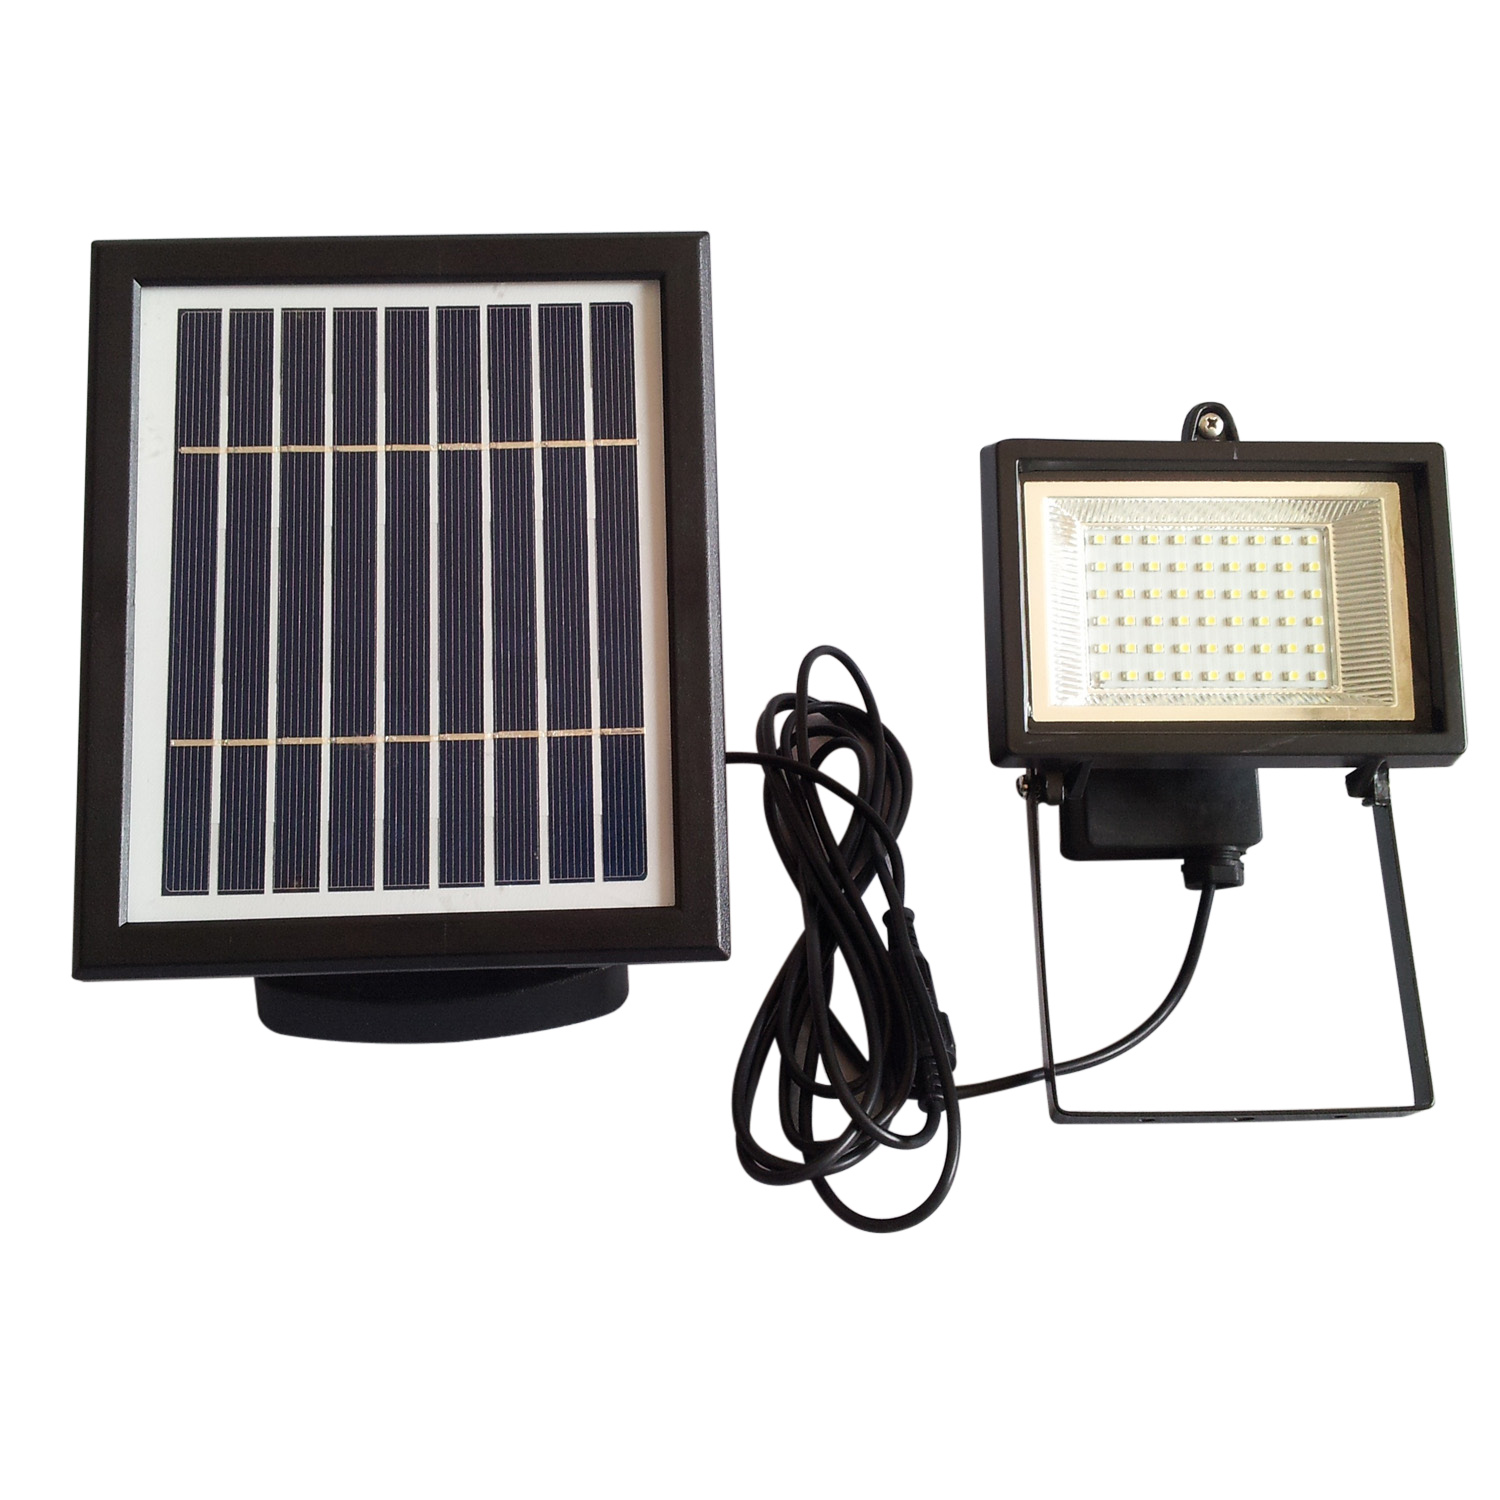 Wholesale Solar Powered LED Flood Light for Courtyard / Lawn (IP65 Weatherproof, 500 Lumens, 54 LEDs)